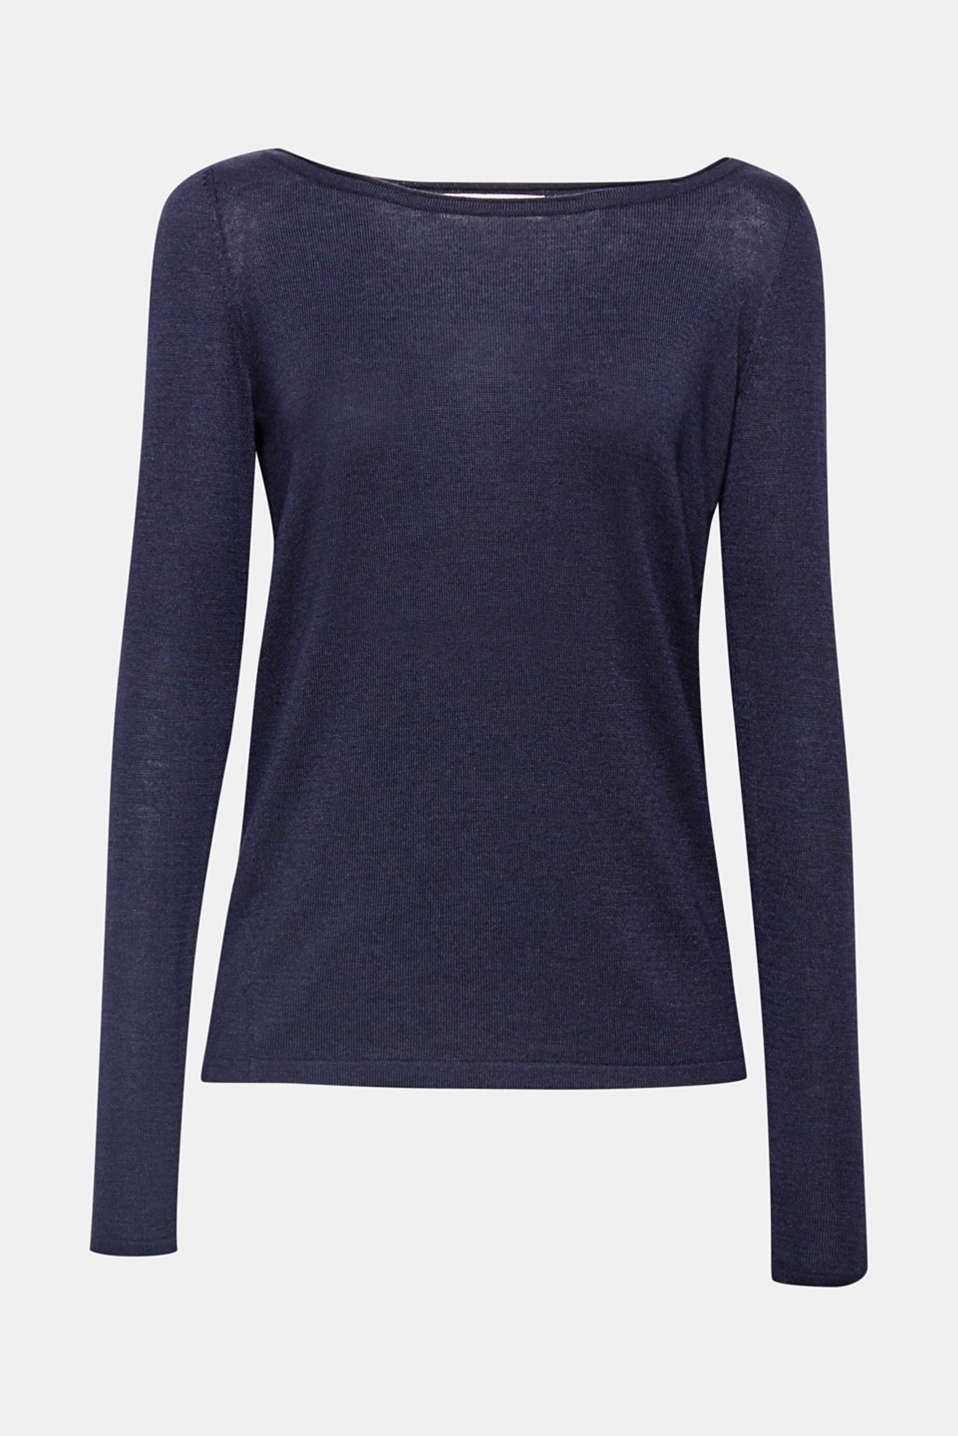 This wide neck jumper with diagonal decorative seams is the perfect essential for relaxed looks!